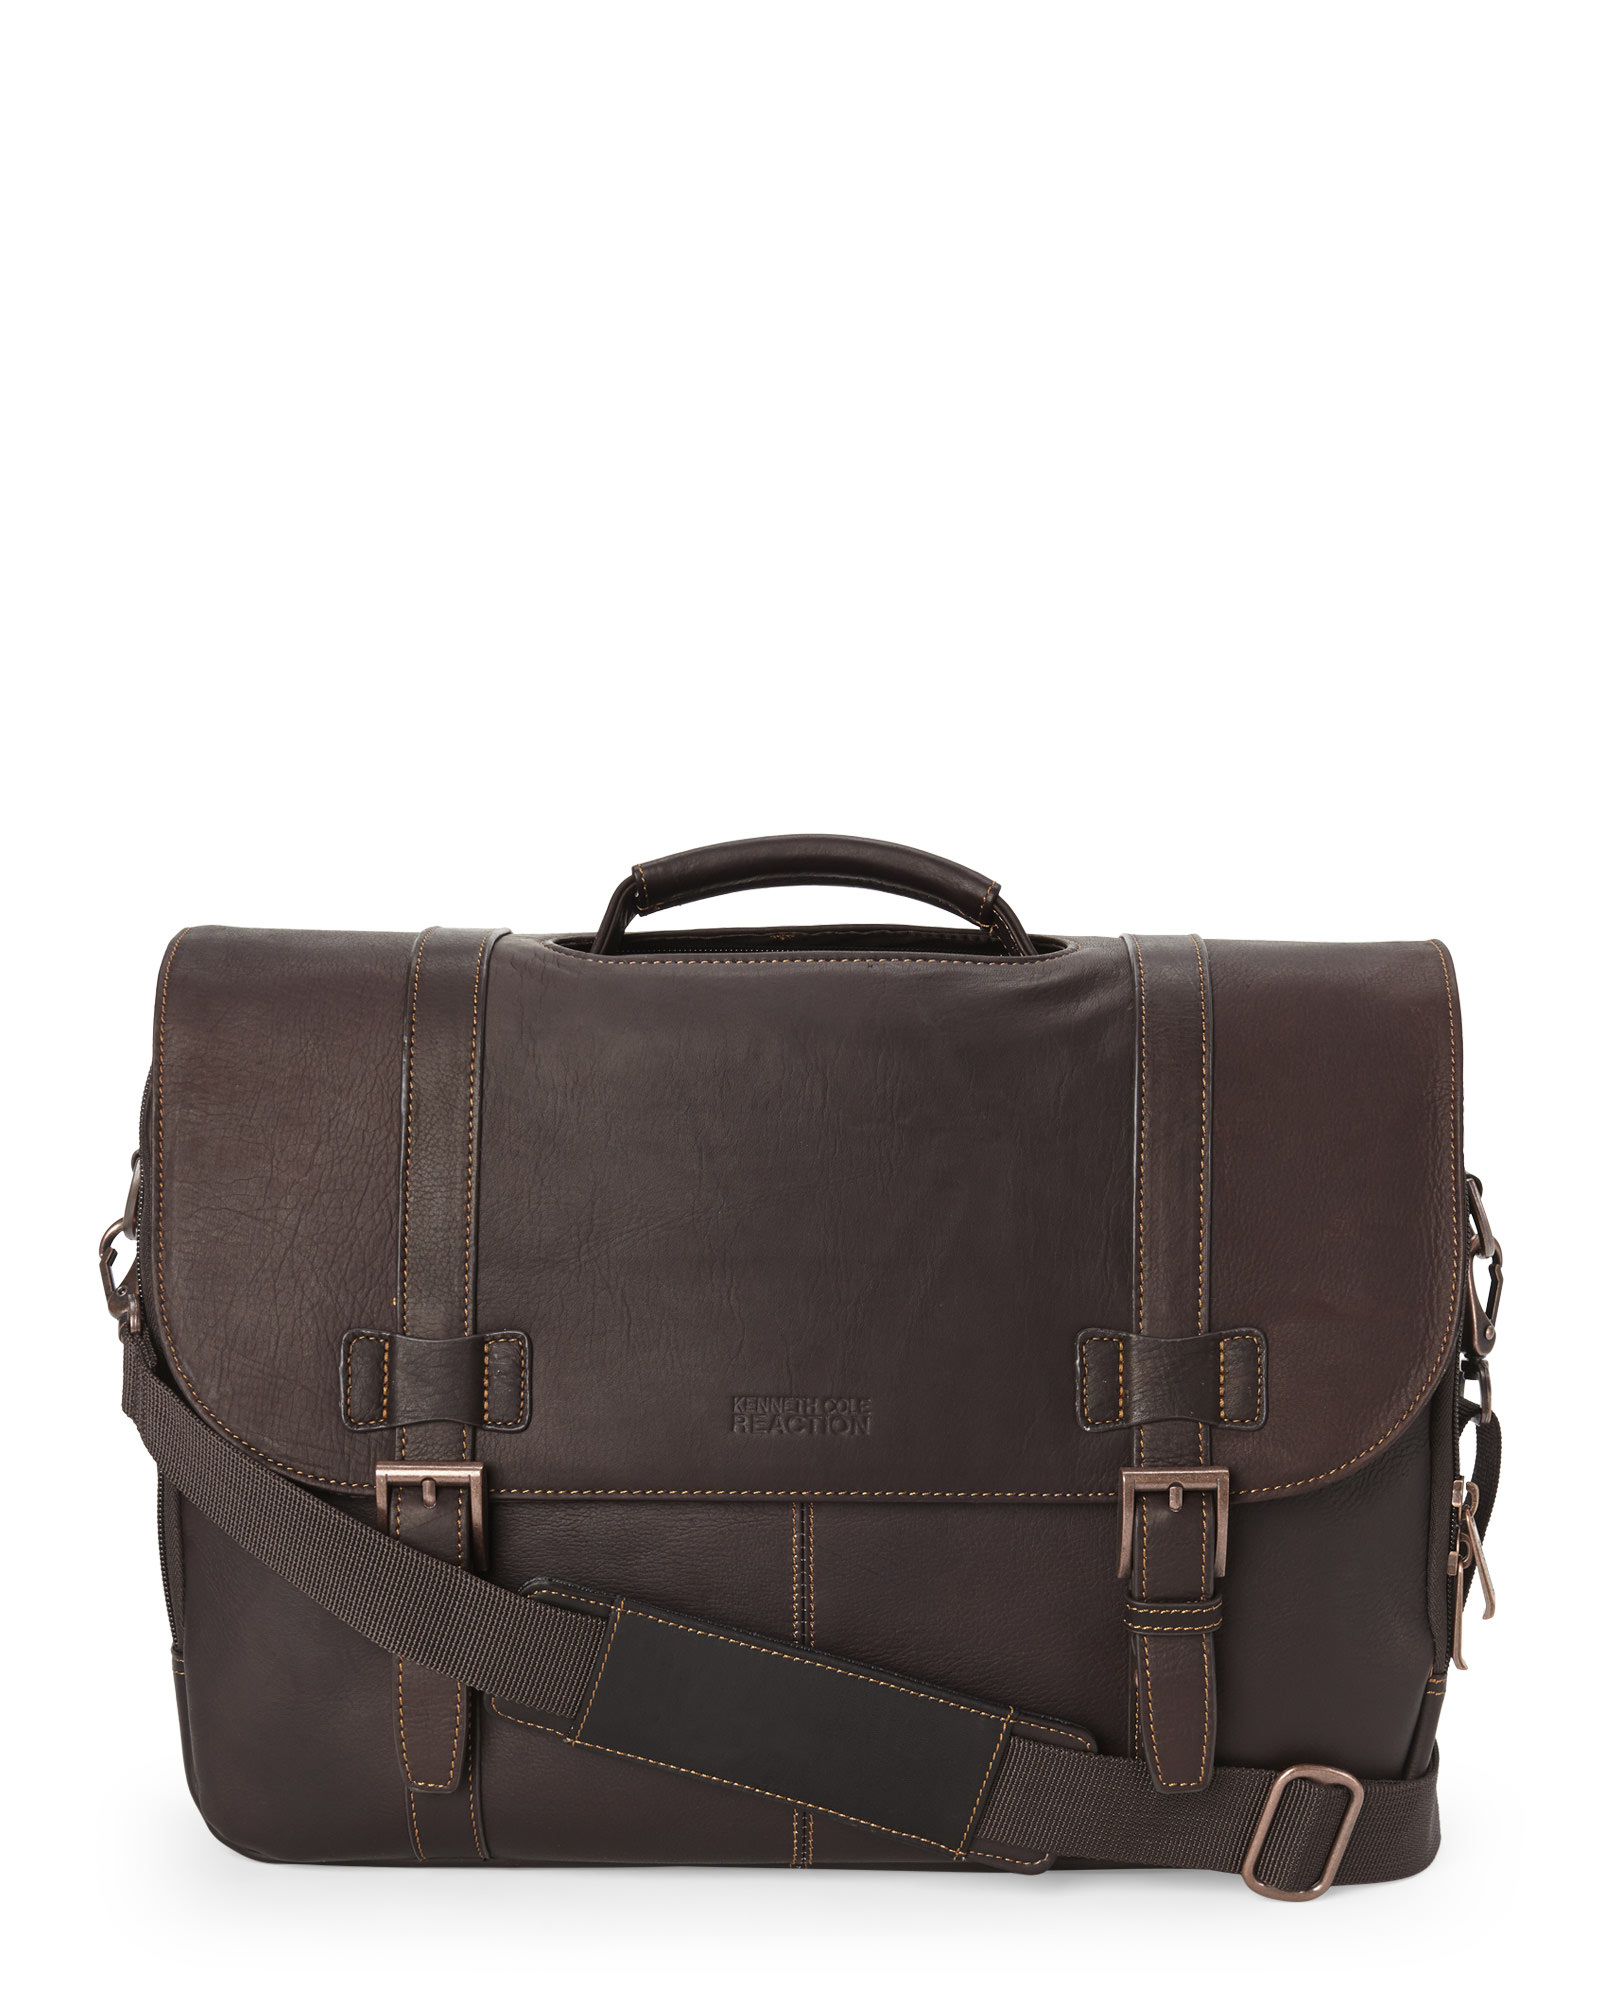 Kenneth cole reaction Show Business Laptop Bag in Brown for Men | Lyst